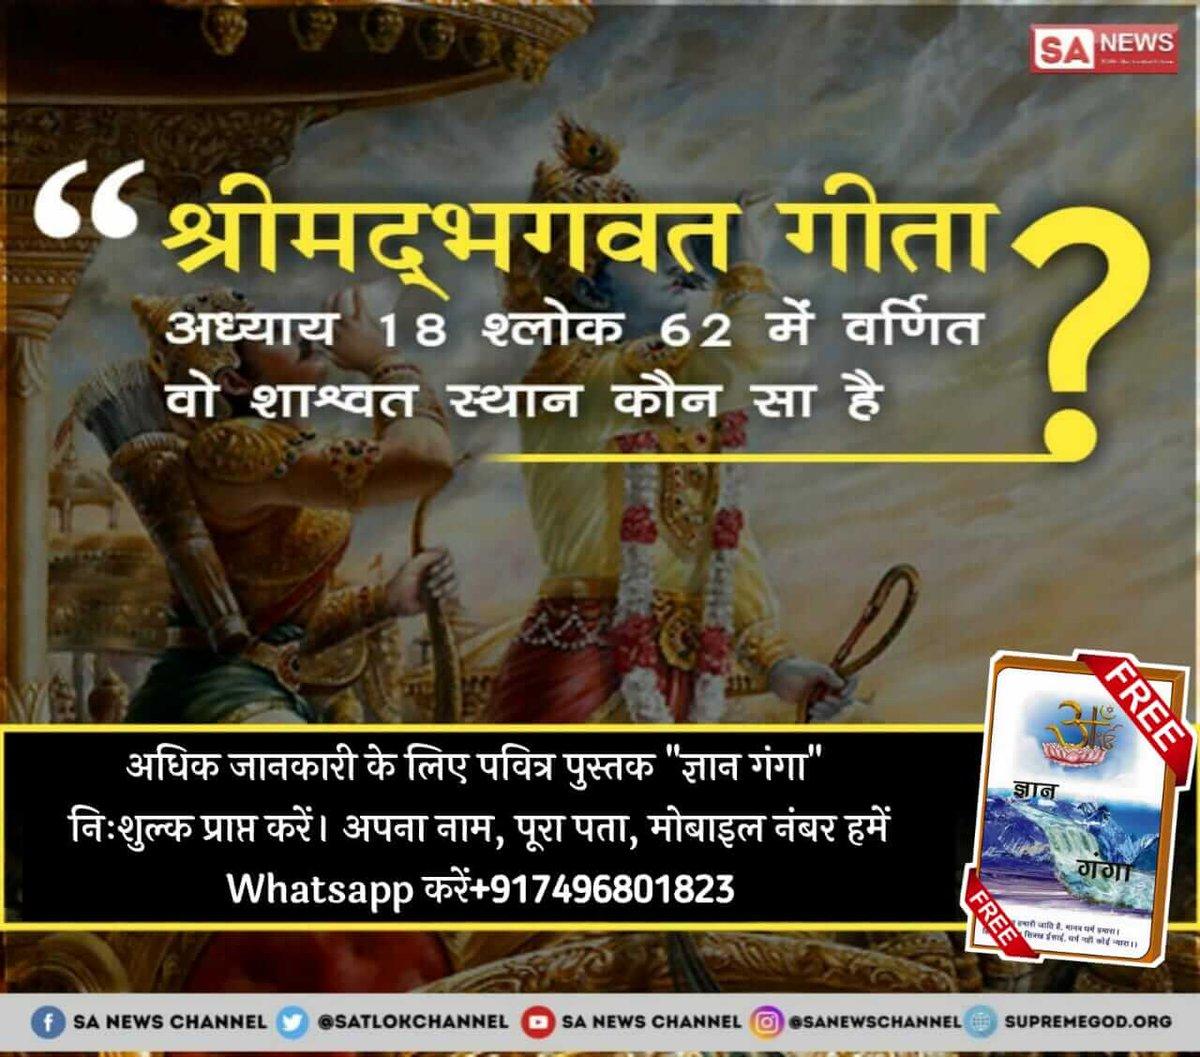 #GodMorningWednesday #HiddenTruthOfGita Bhagavad Gita 4:13 Gita narrator said to arjun You and i both had many births before, i know you don't know. We are not immortal, For complete moksha you should search Tatvadarshi Saint.  @SaintRampalJiM